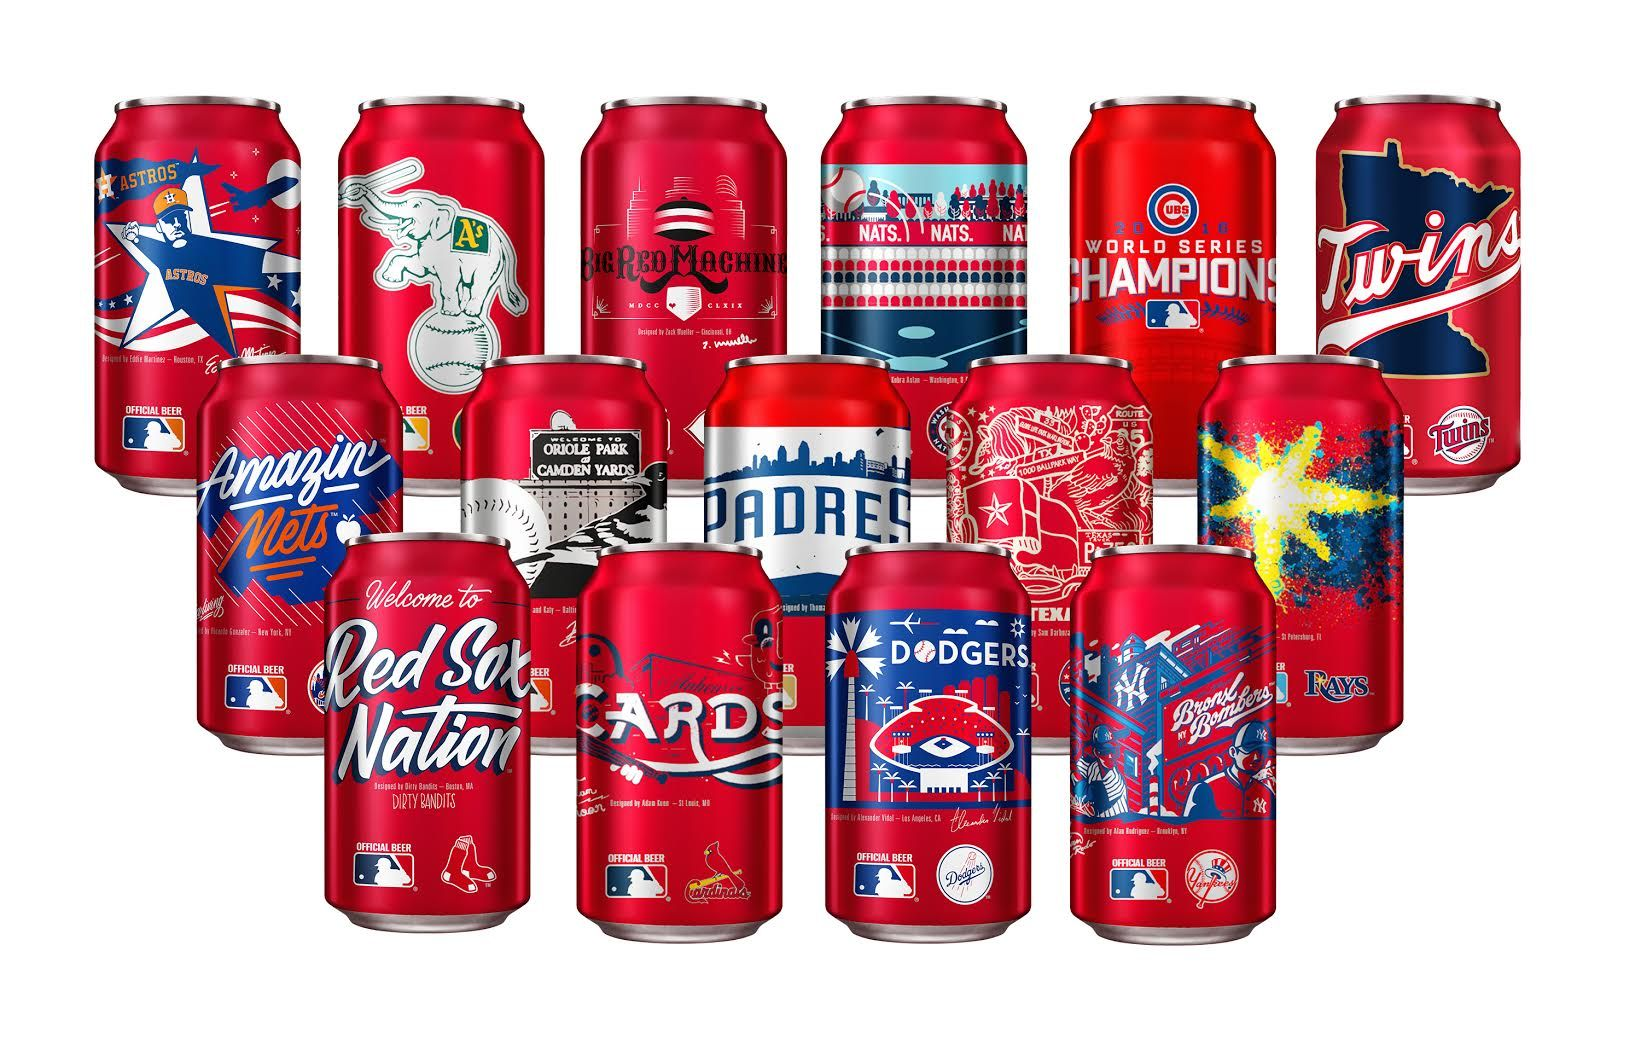 Bud Mlb Cans Jpg 1641 1038 Budweiser Beer Can Collection Baseball Season